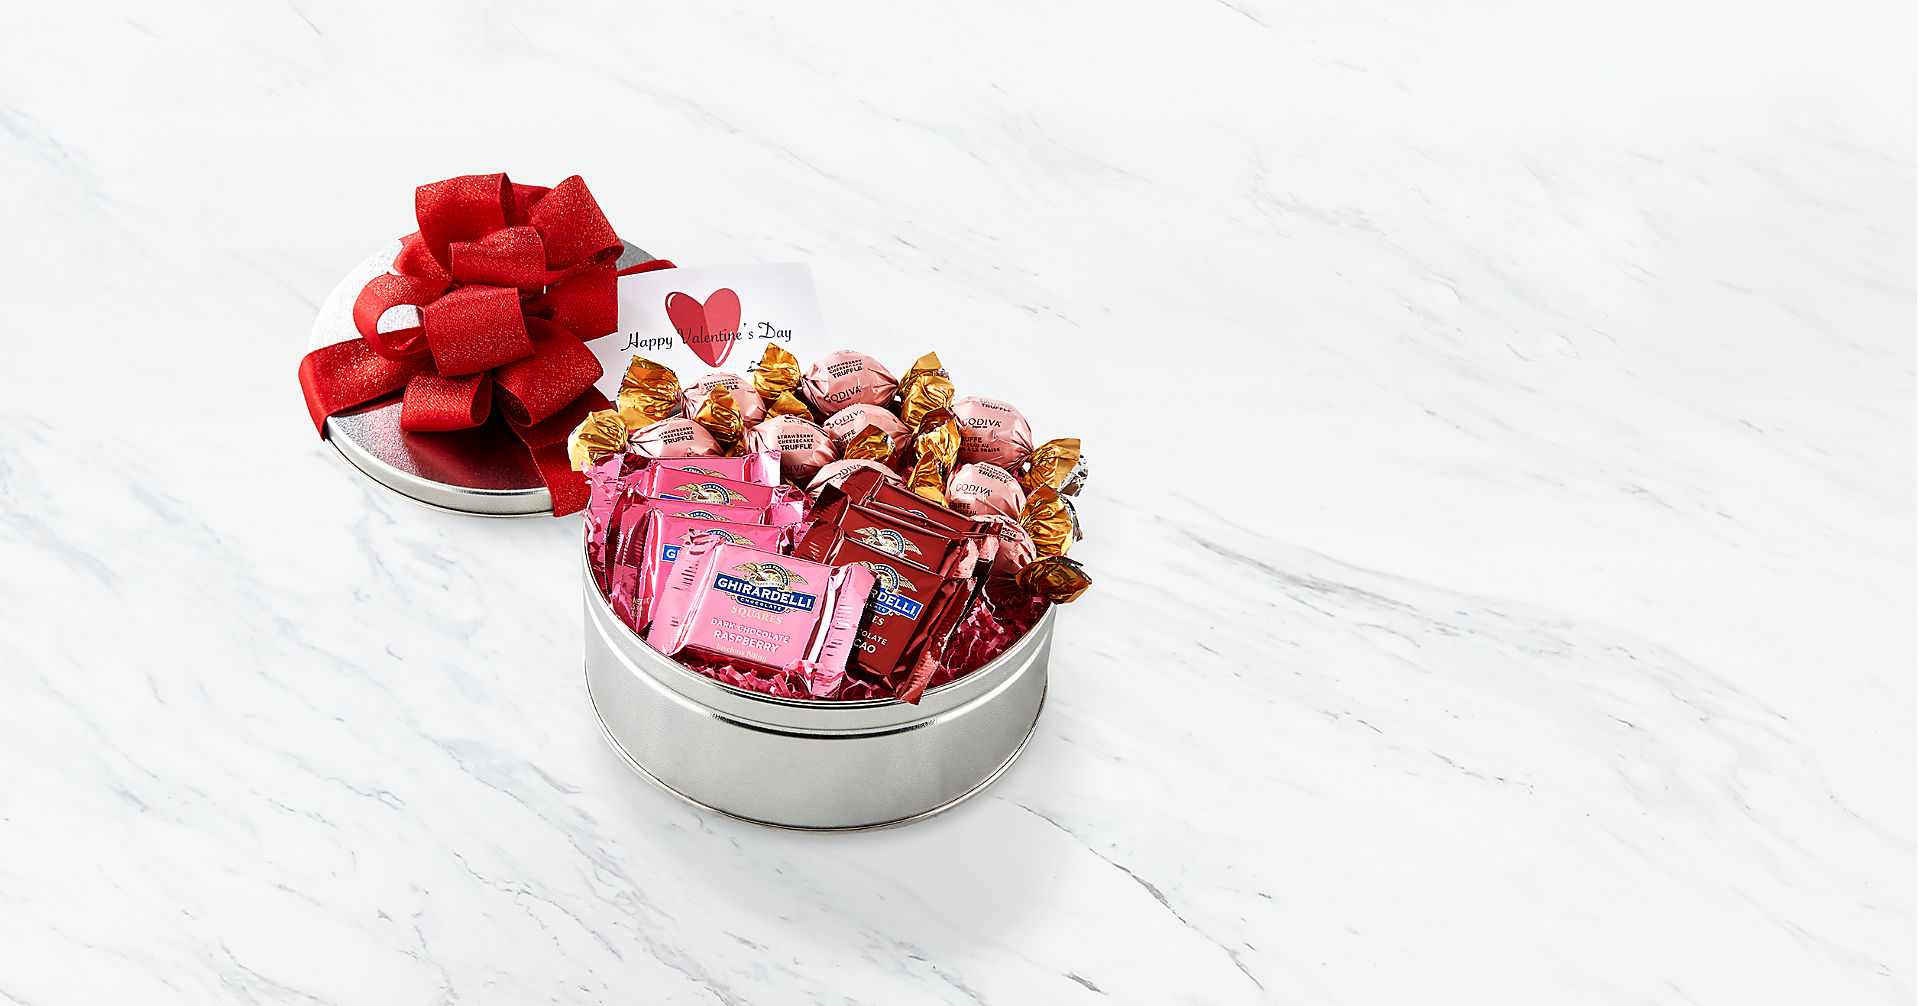 Chocolate Lover's Valentines Assortment Gift Tin - Image 1 Of 2